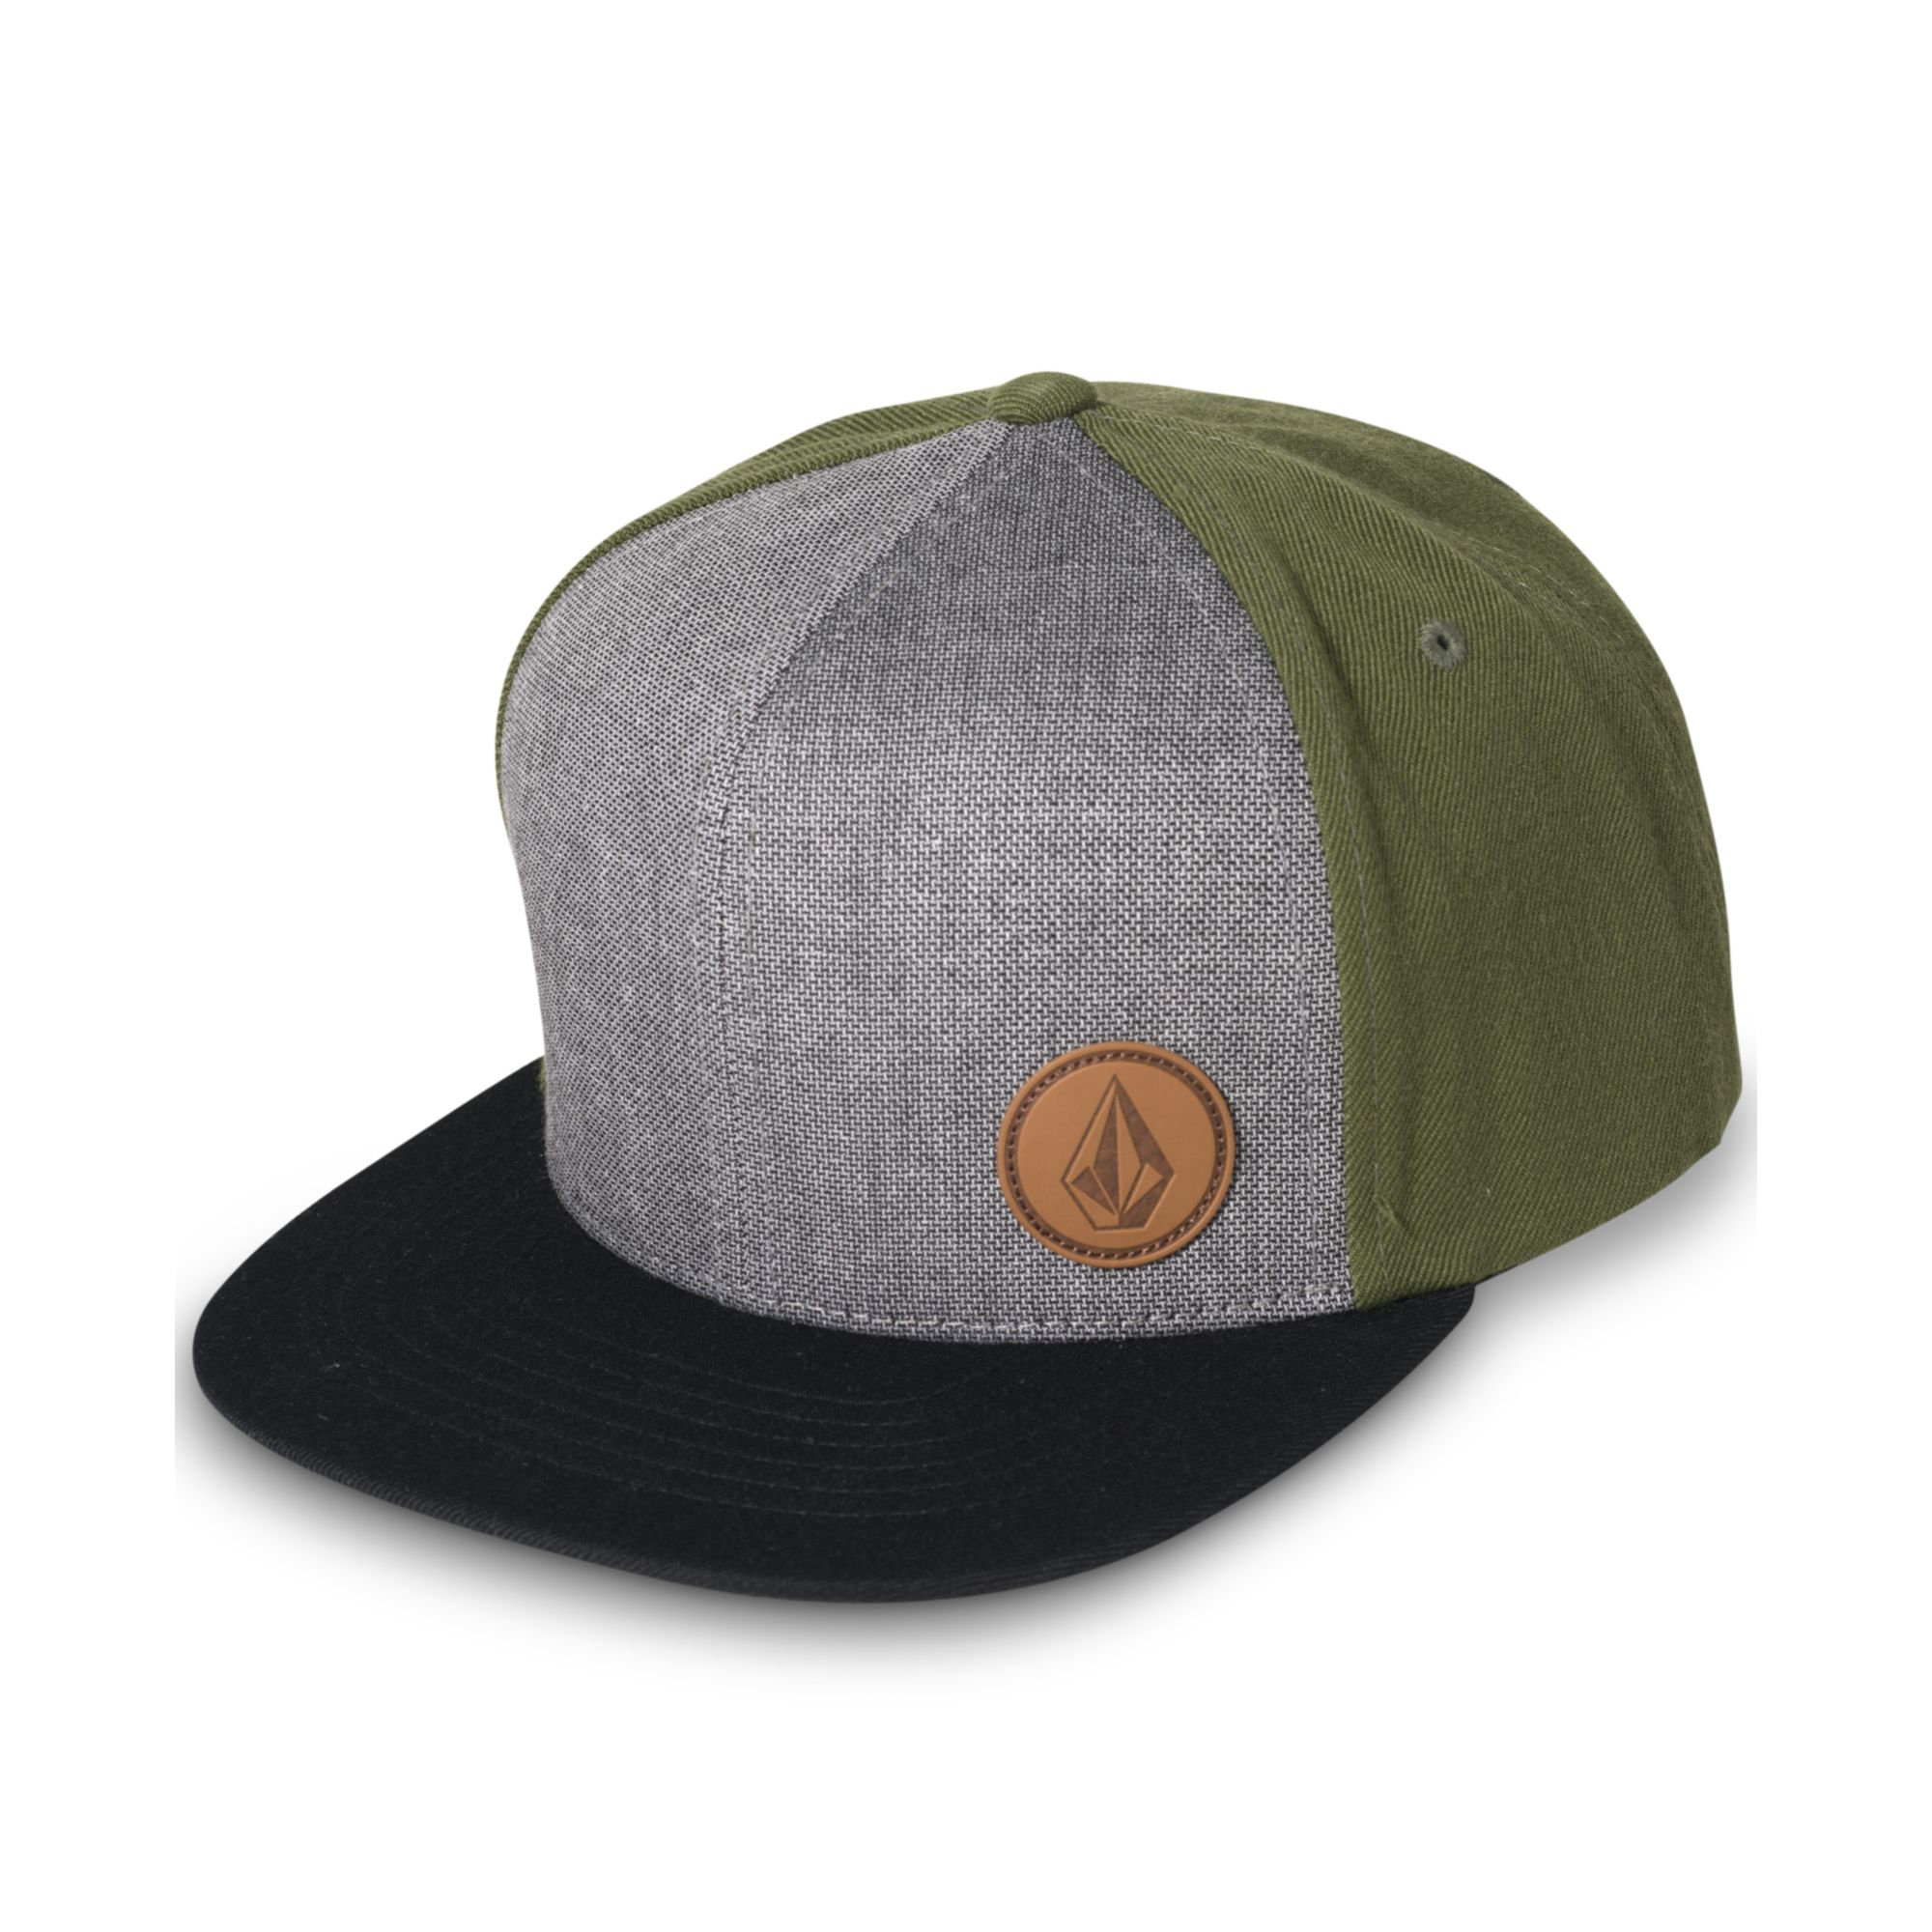 c0e9509a4ad ... sweden lyst volcom upper corner stone snapback hat in green for men  f2a63 a6990